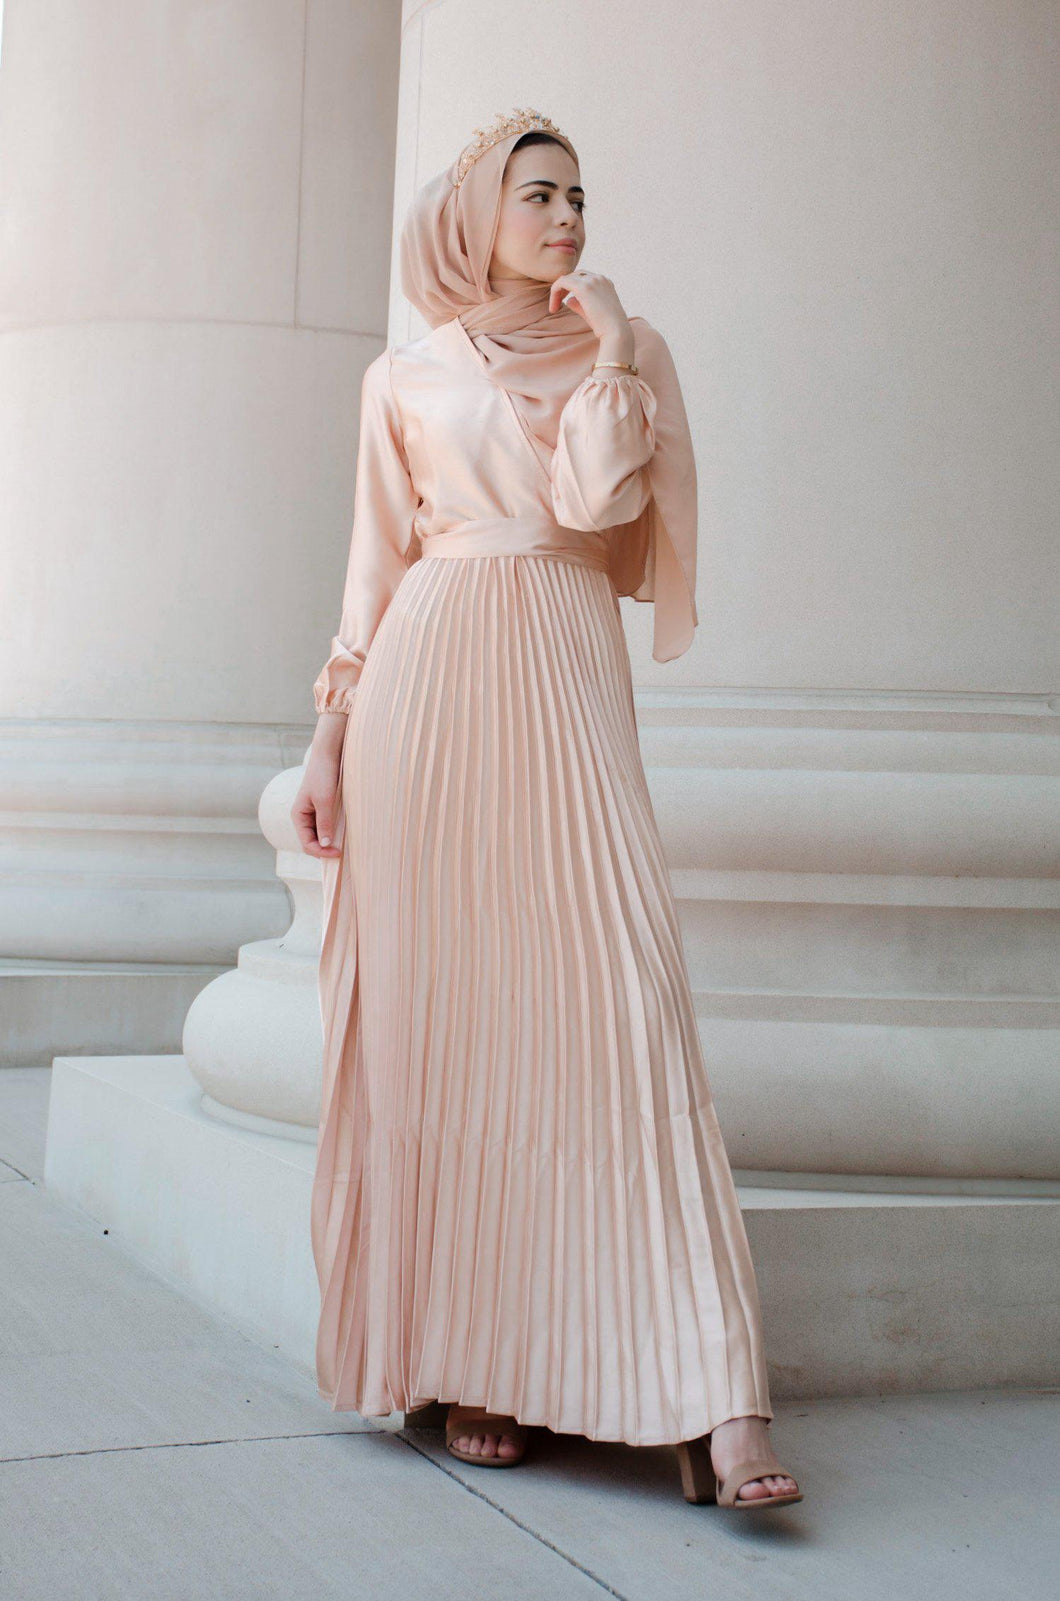 PRE-ORDER: Ayla Pleated Satin Gown - Sunlight Gold - Dresses - Niswa Fashion - Third Culture Boutique